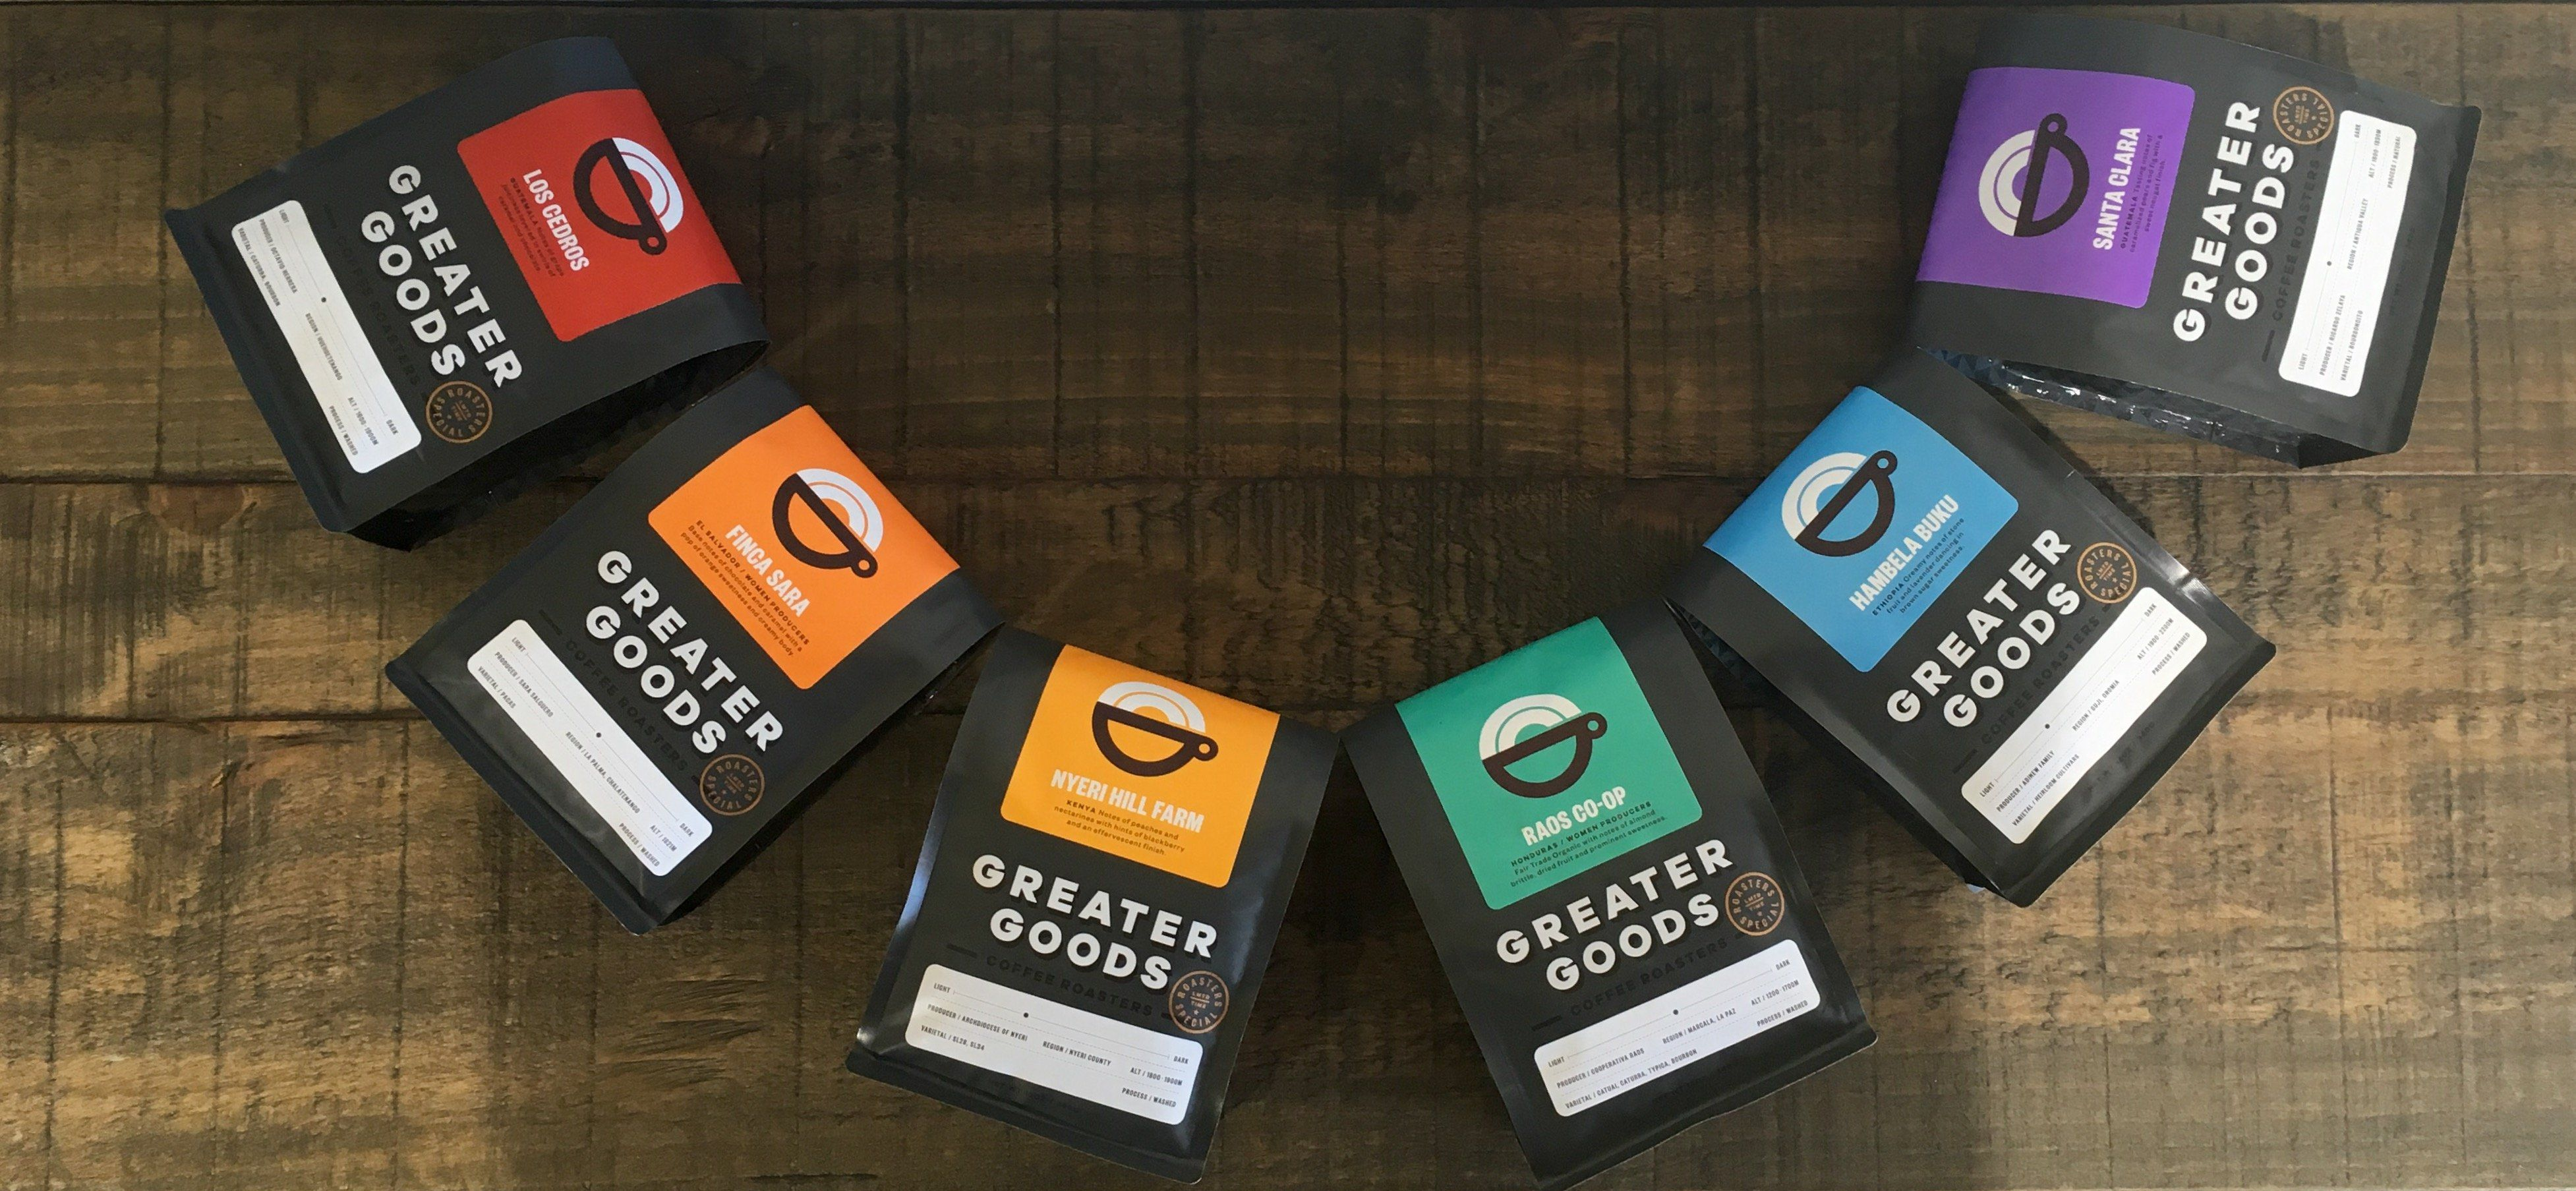 Greater goods coffee roasting is a specialty coffee